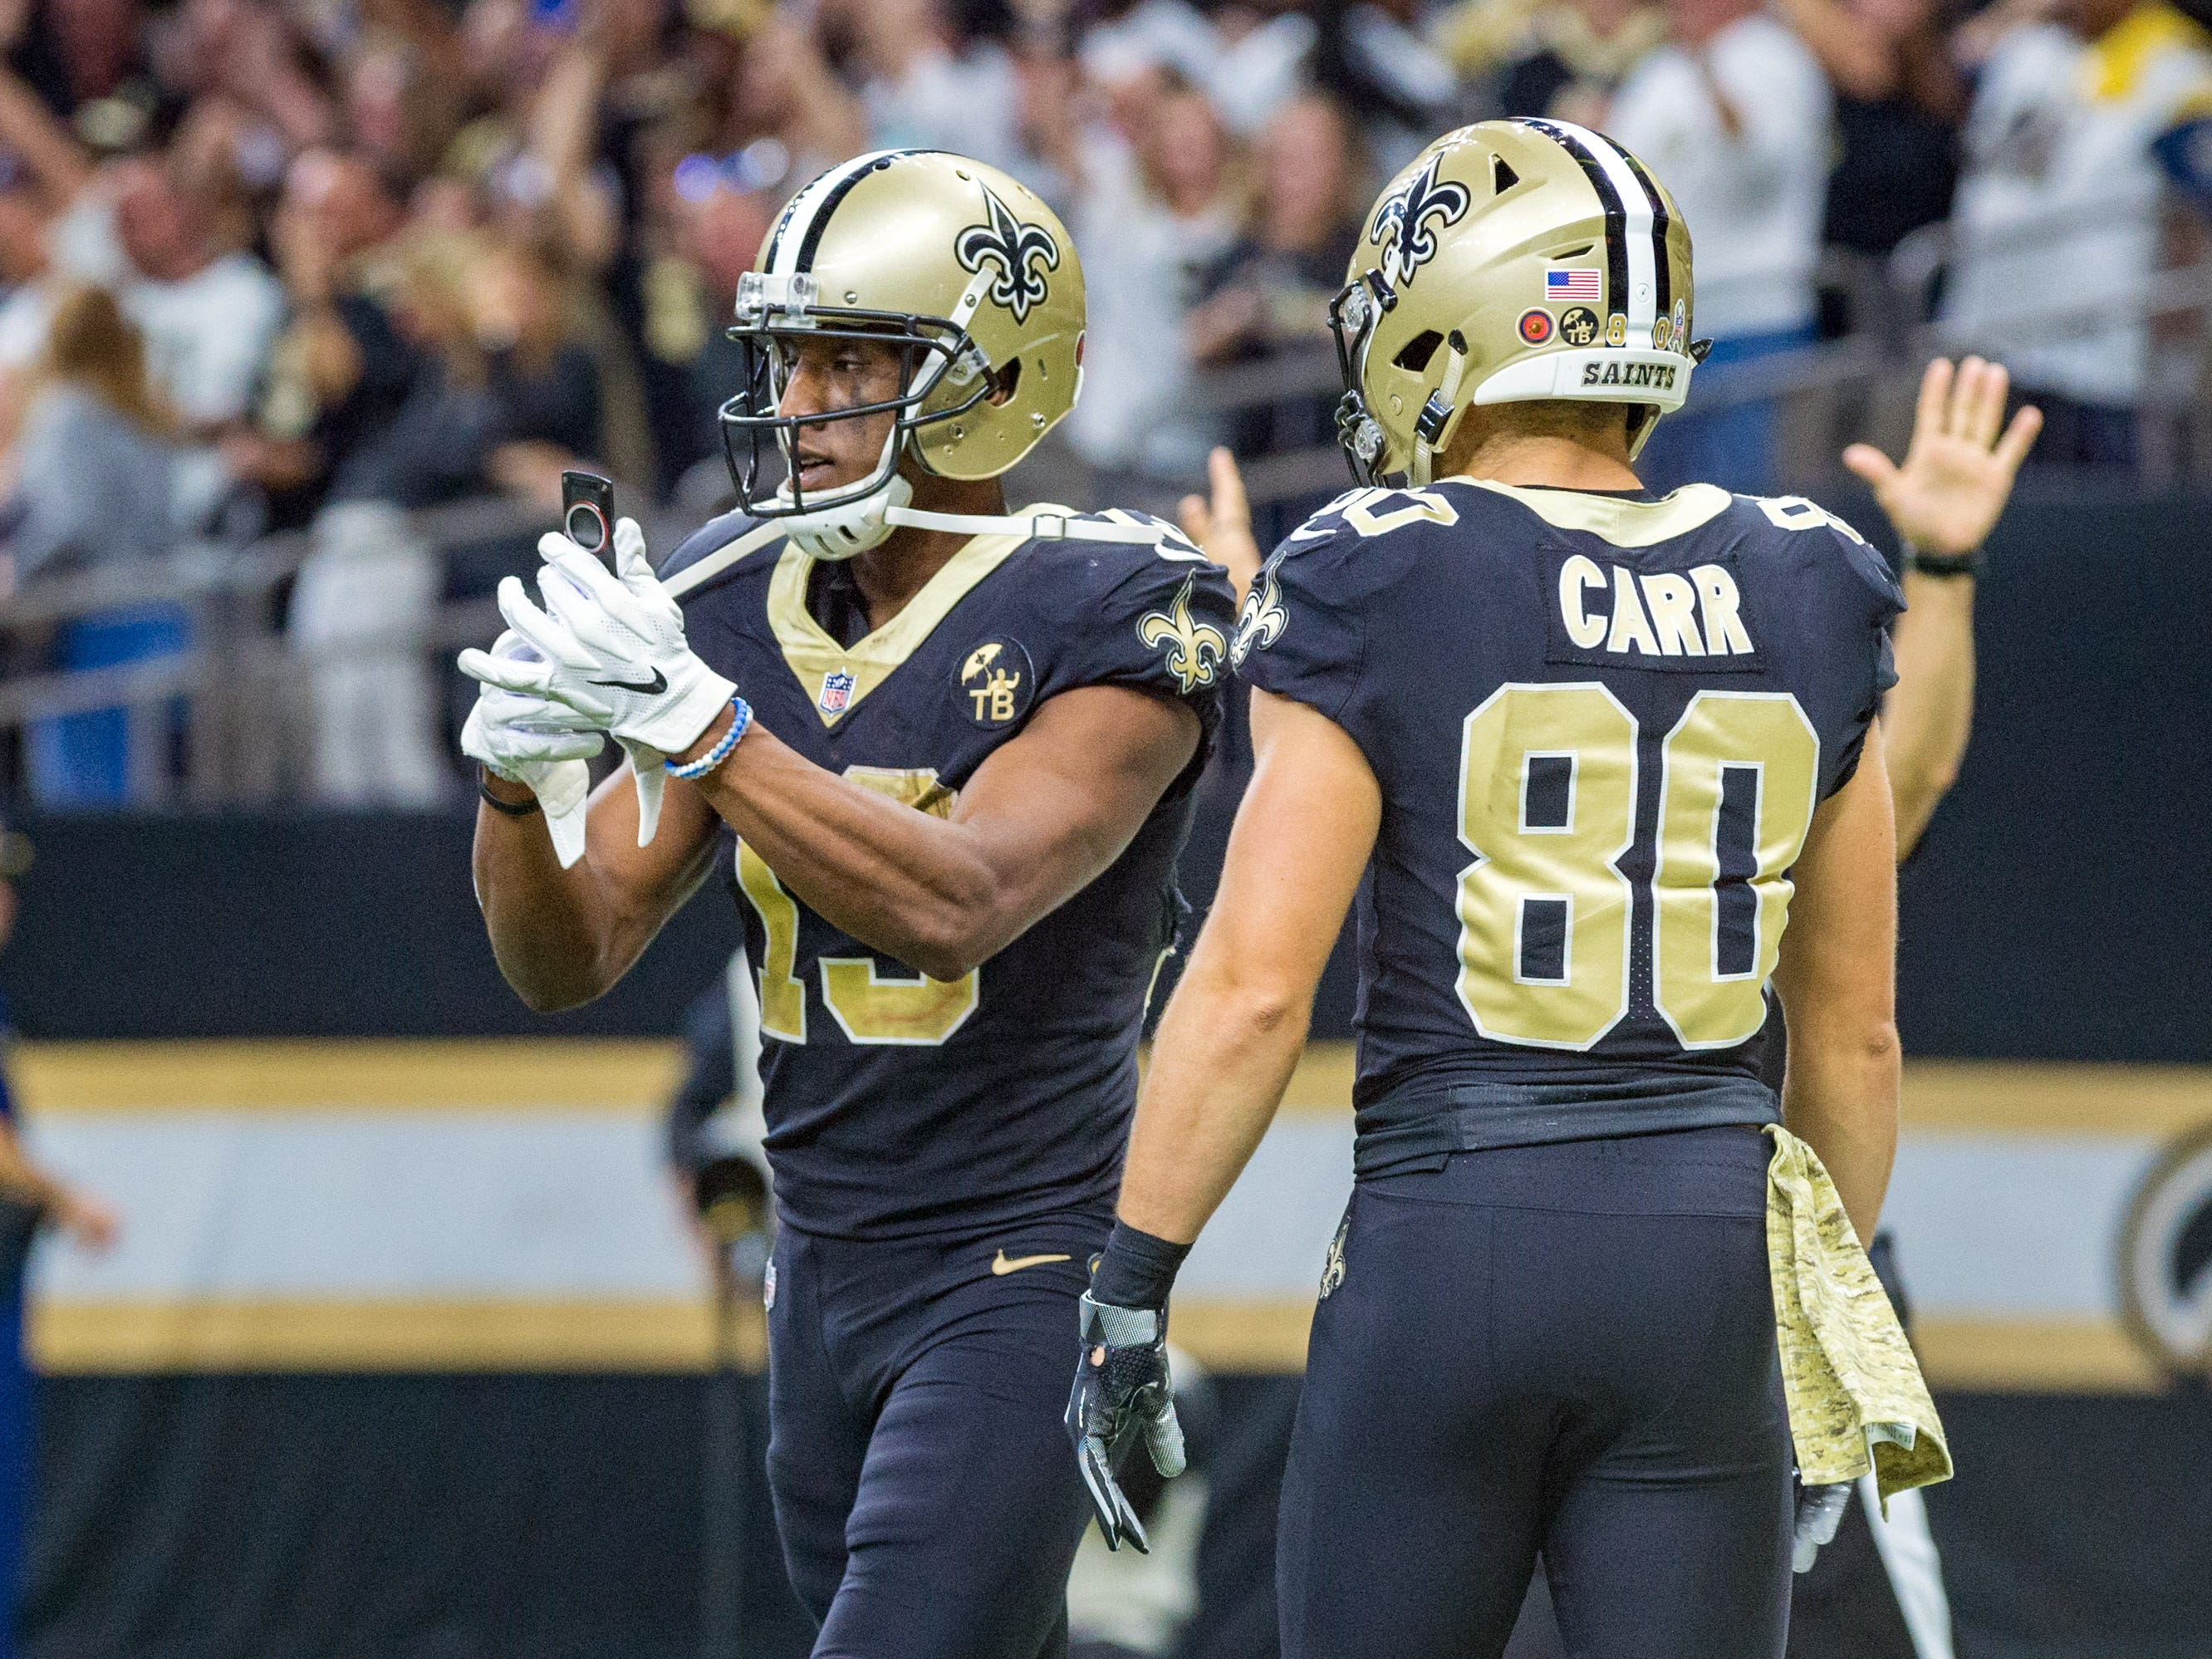 1. Saints (2): Handing Rams their first defeat earns catbird seat. But despite owning key tiebreaker, New Orleans has much tougher path to NFC's top seed.